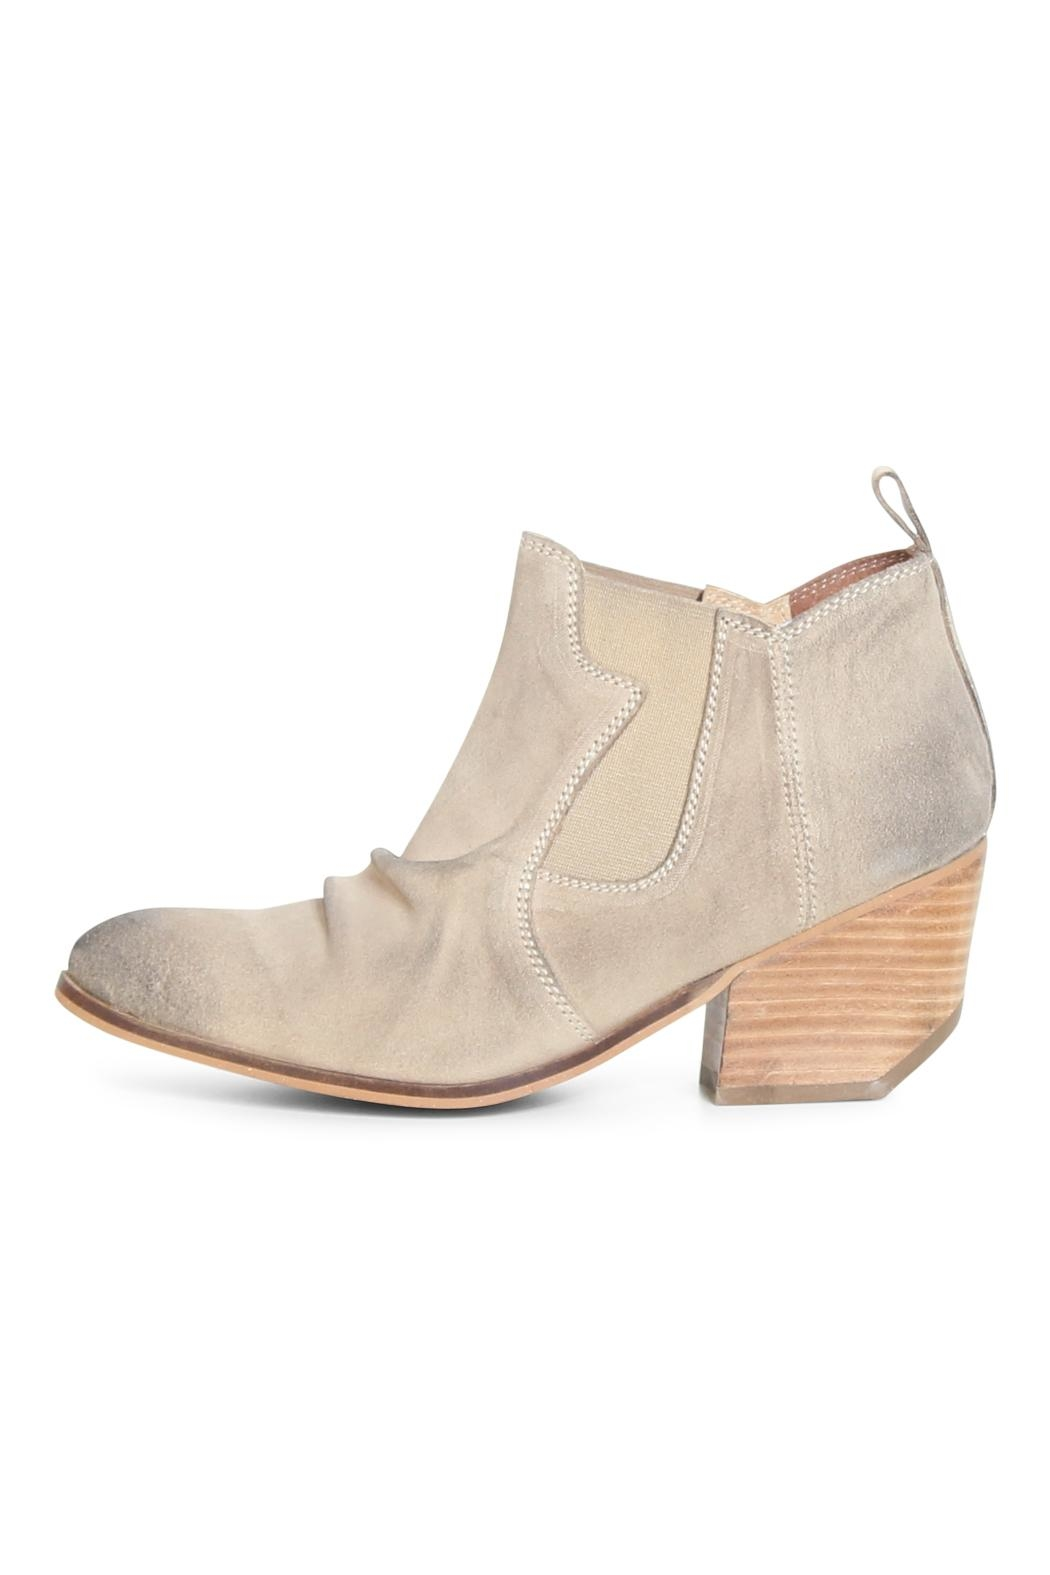 Coconuts by Matisse Wilkins Western Bootie - Front Cropped Image